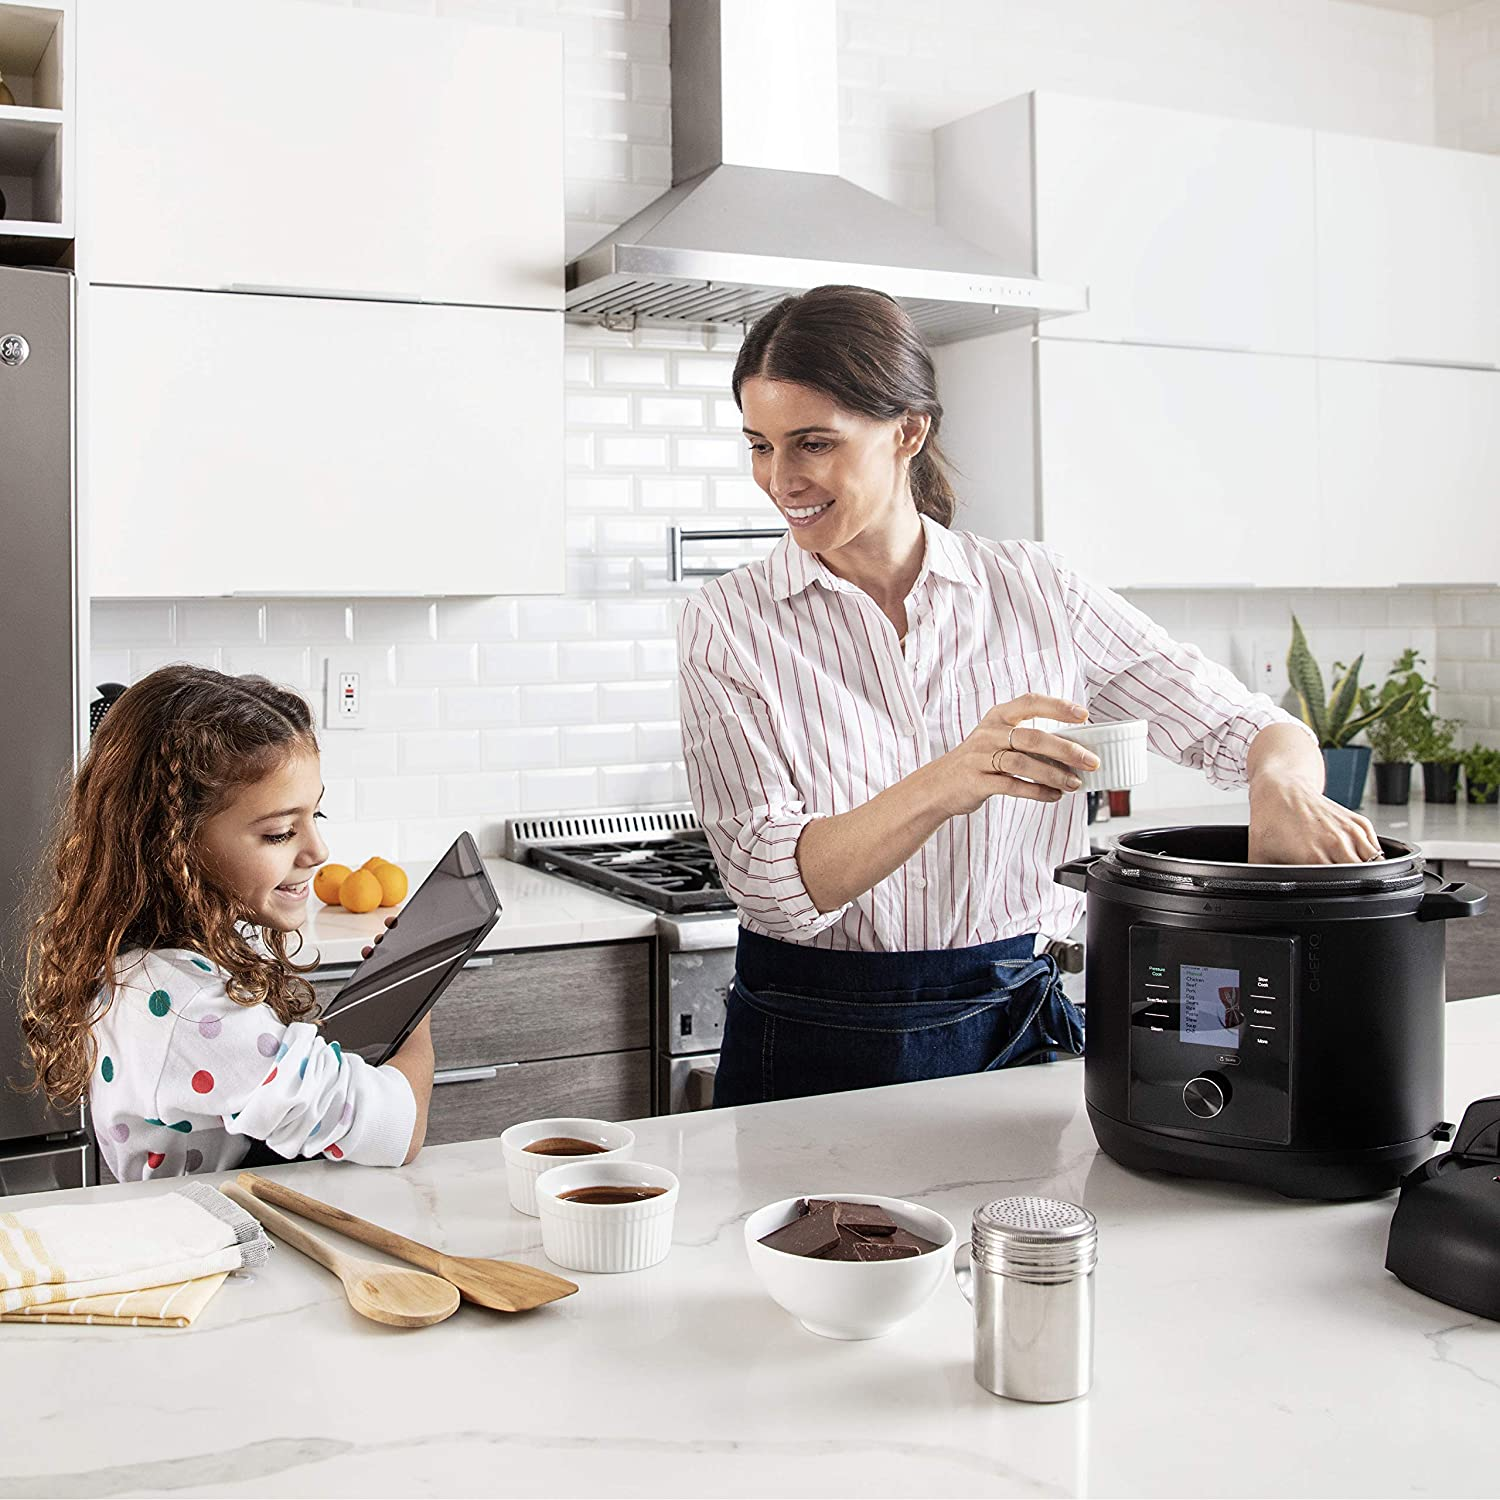 mother and daughter making food in multi-cooker